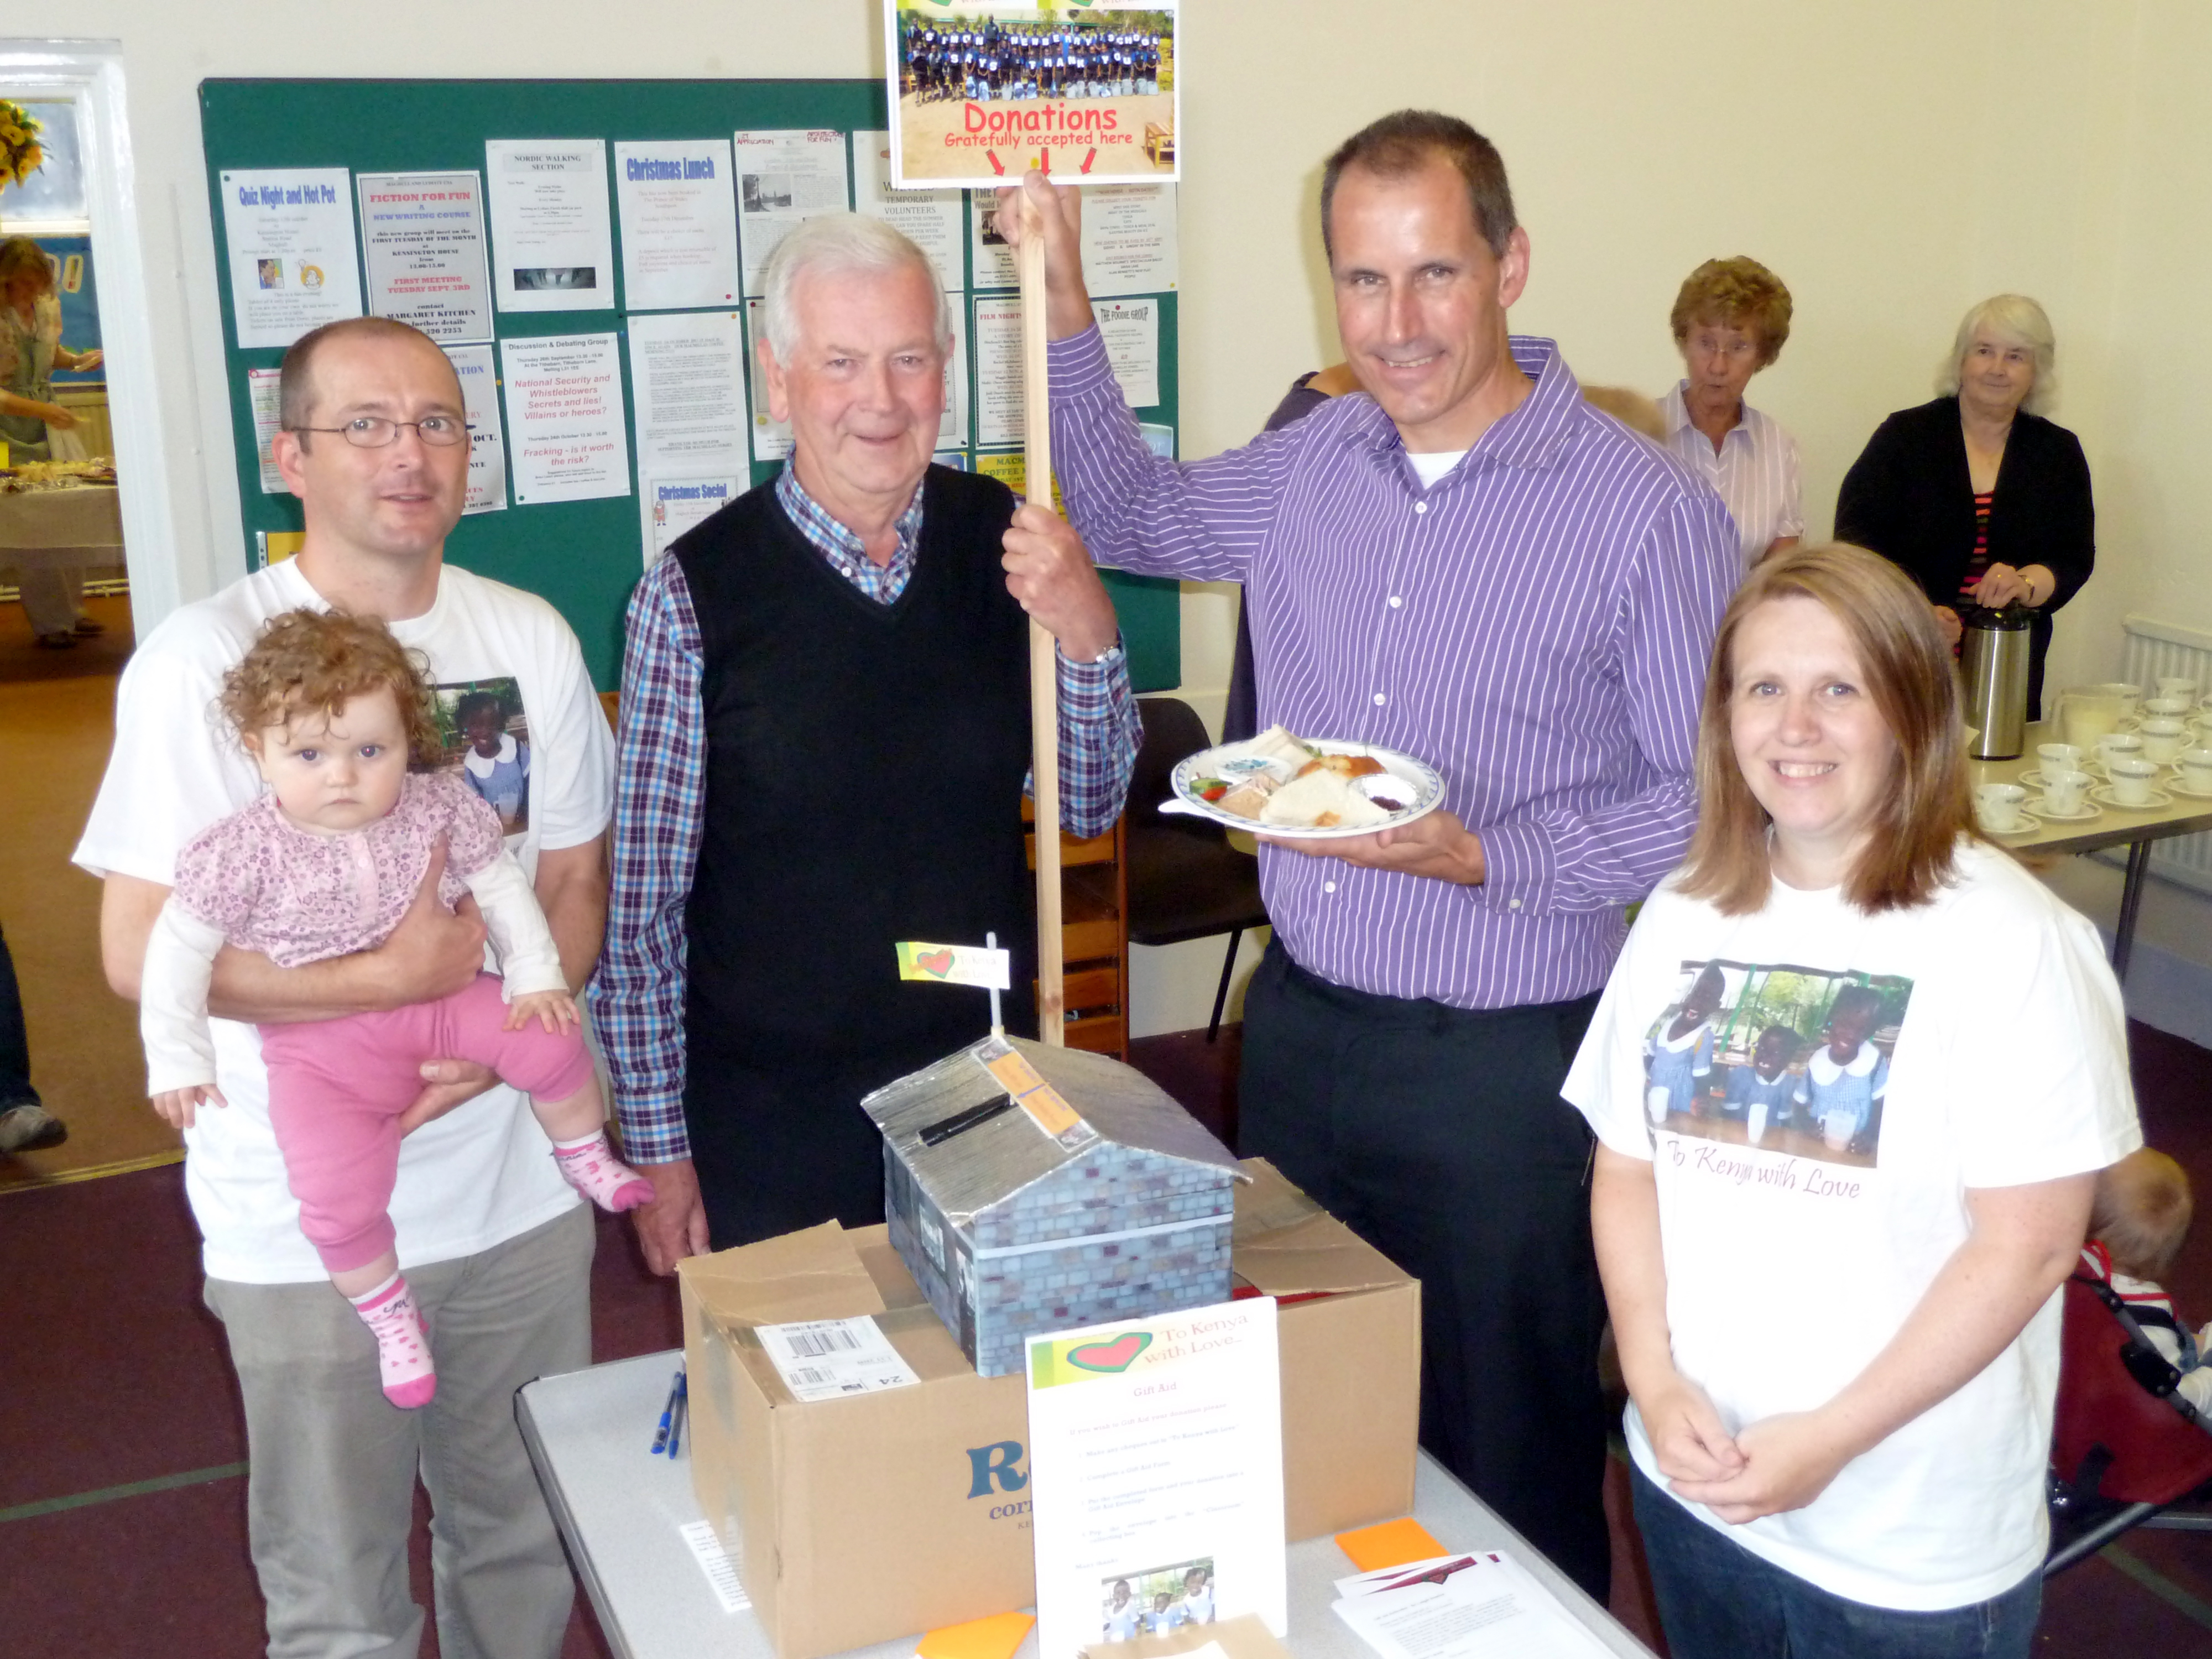 Sefton Central Labour MP Bill Esterson with Maghull Baptist Church To Kenya With Love Clotted Cream Tea fundraiser organisers Geoff Halligan, Phil and Di Ball and daughter Maiya.